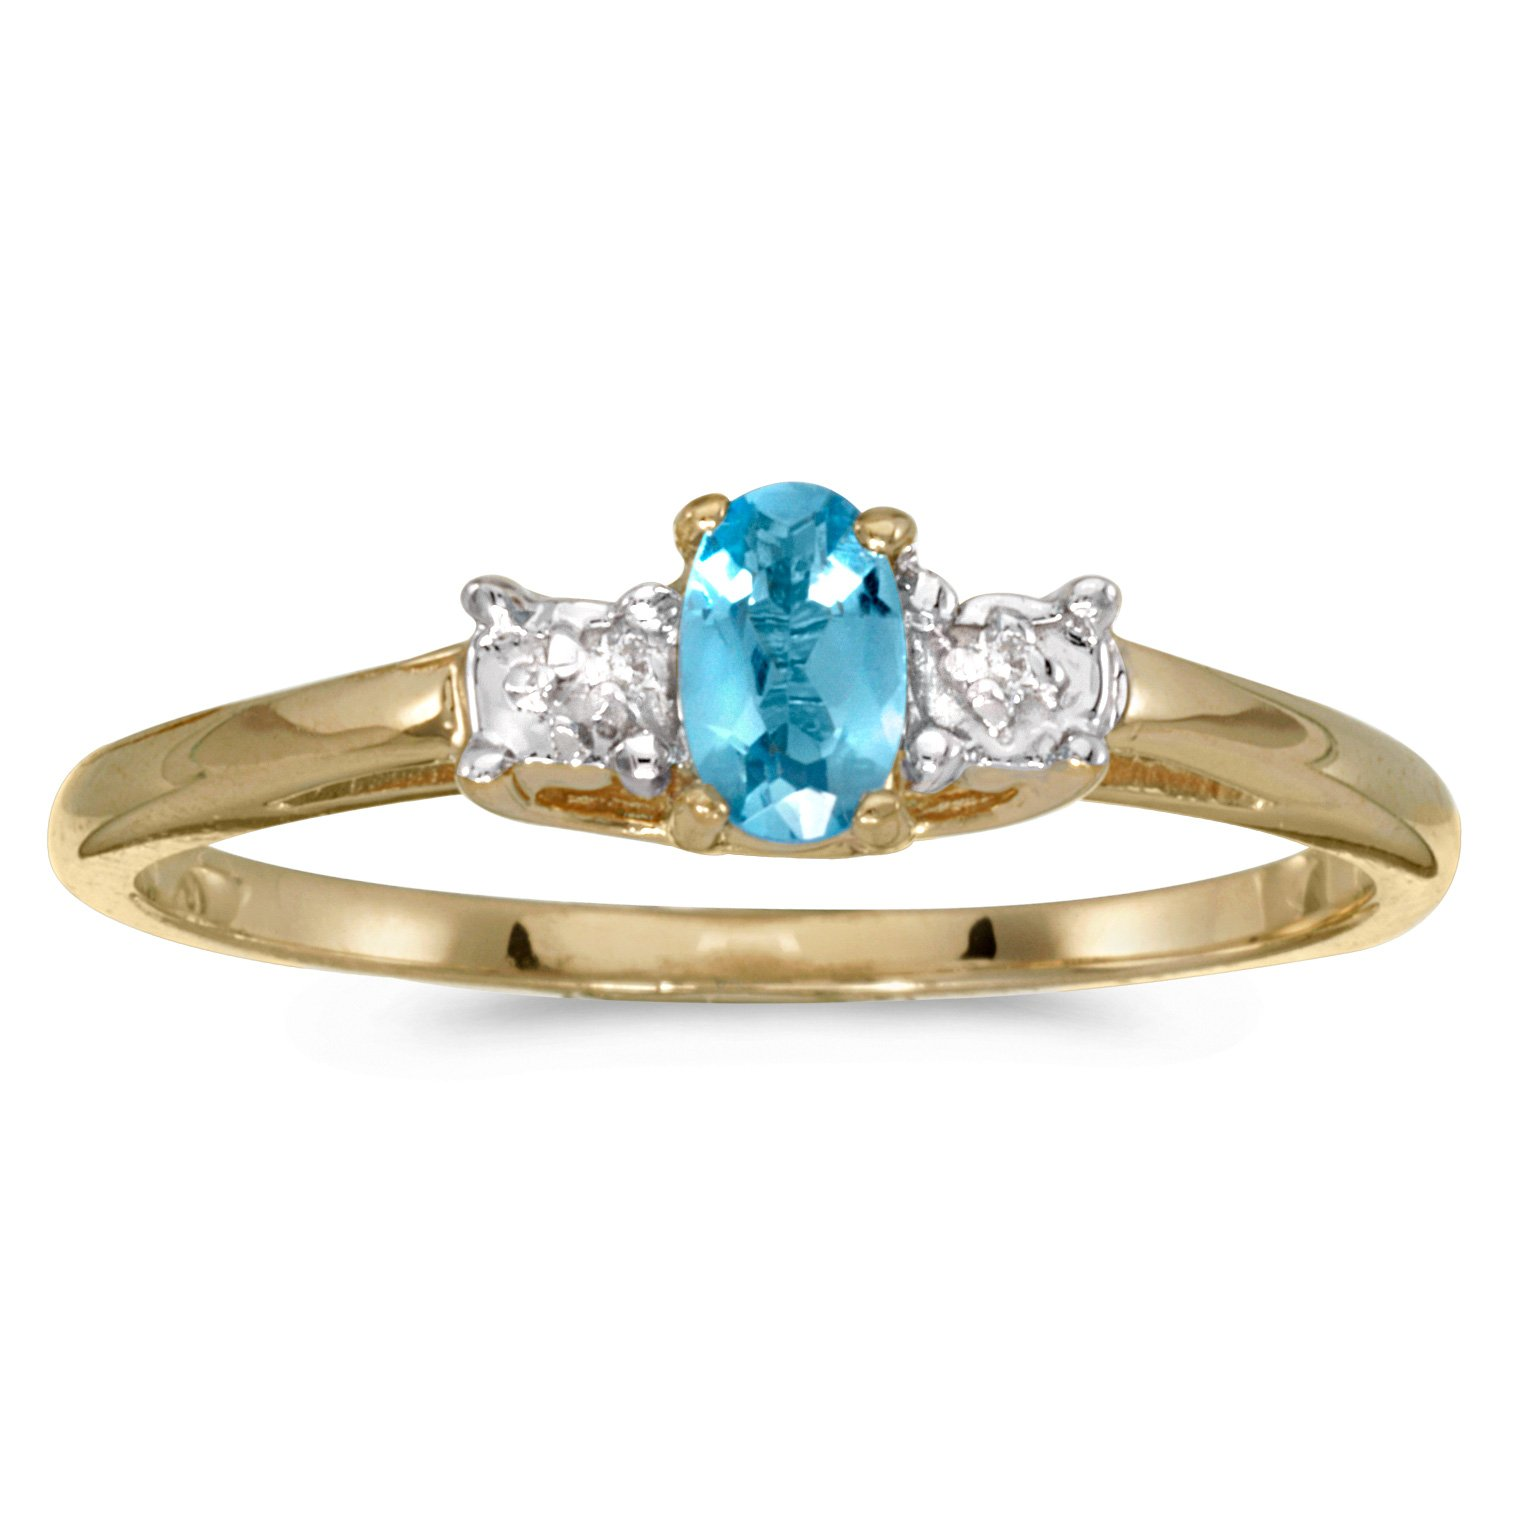 Jewels By Lux 14k Yellow Gold Genuine Blue Birthstone Solitaire Oval Blue Topaz And Diamond Wedding Engagement Ring - Size 7.5 (1/5 Cttw.)